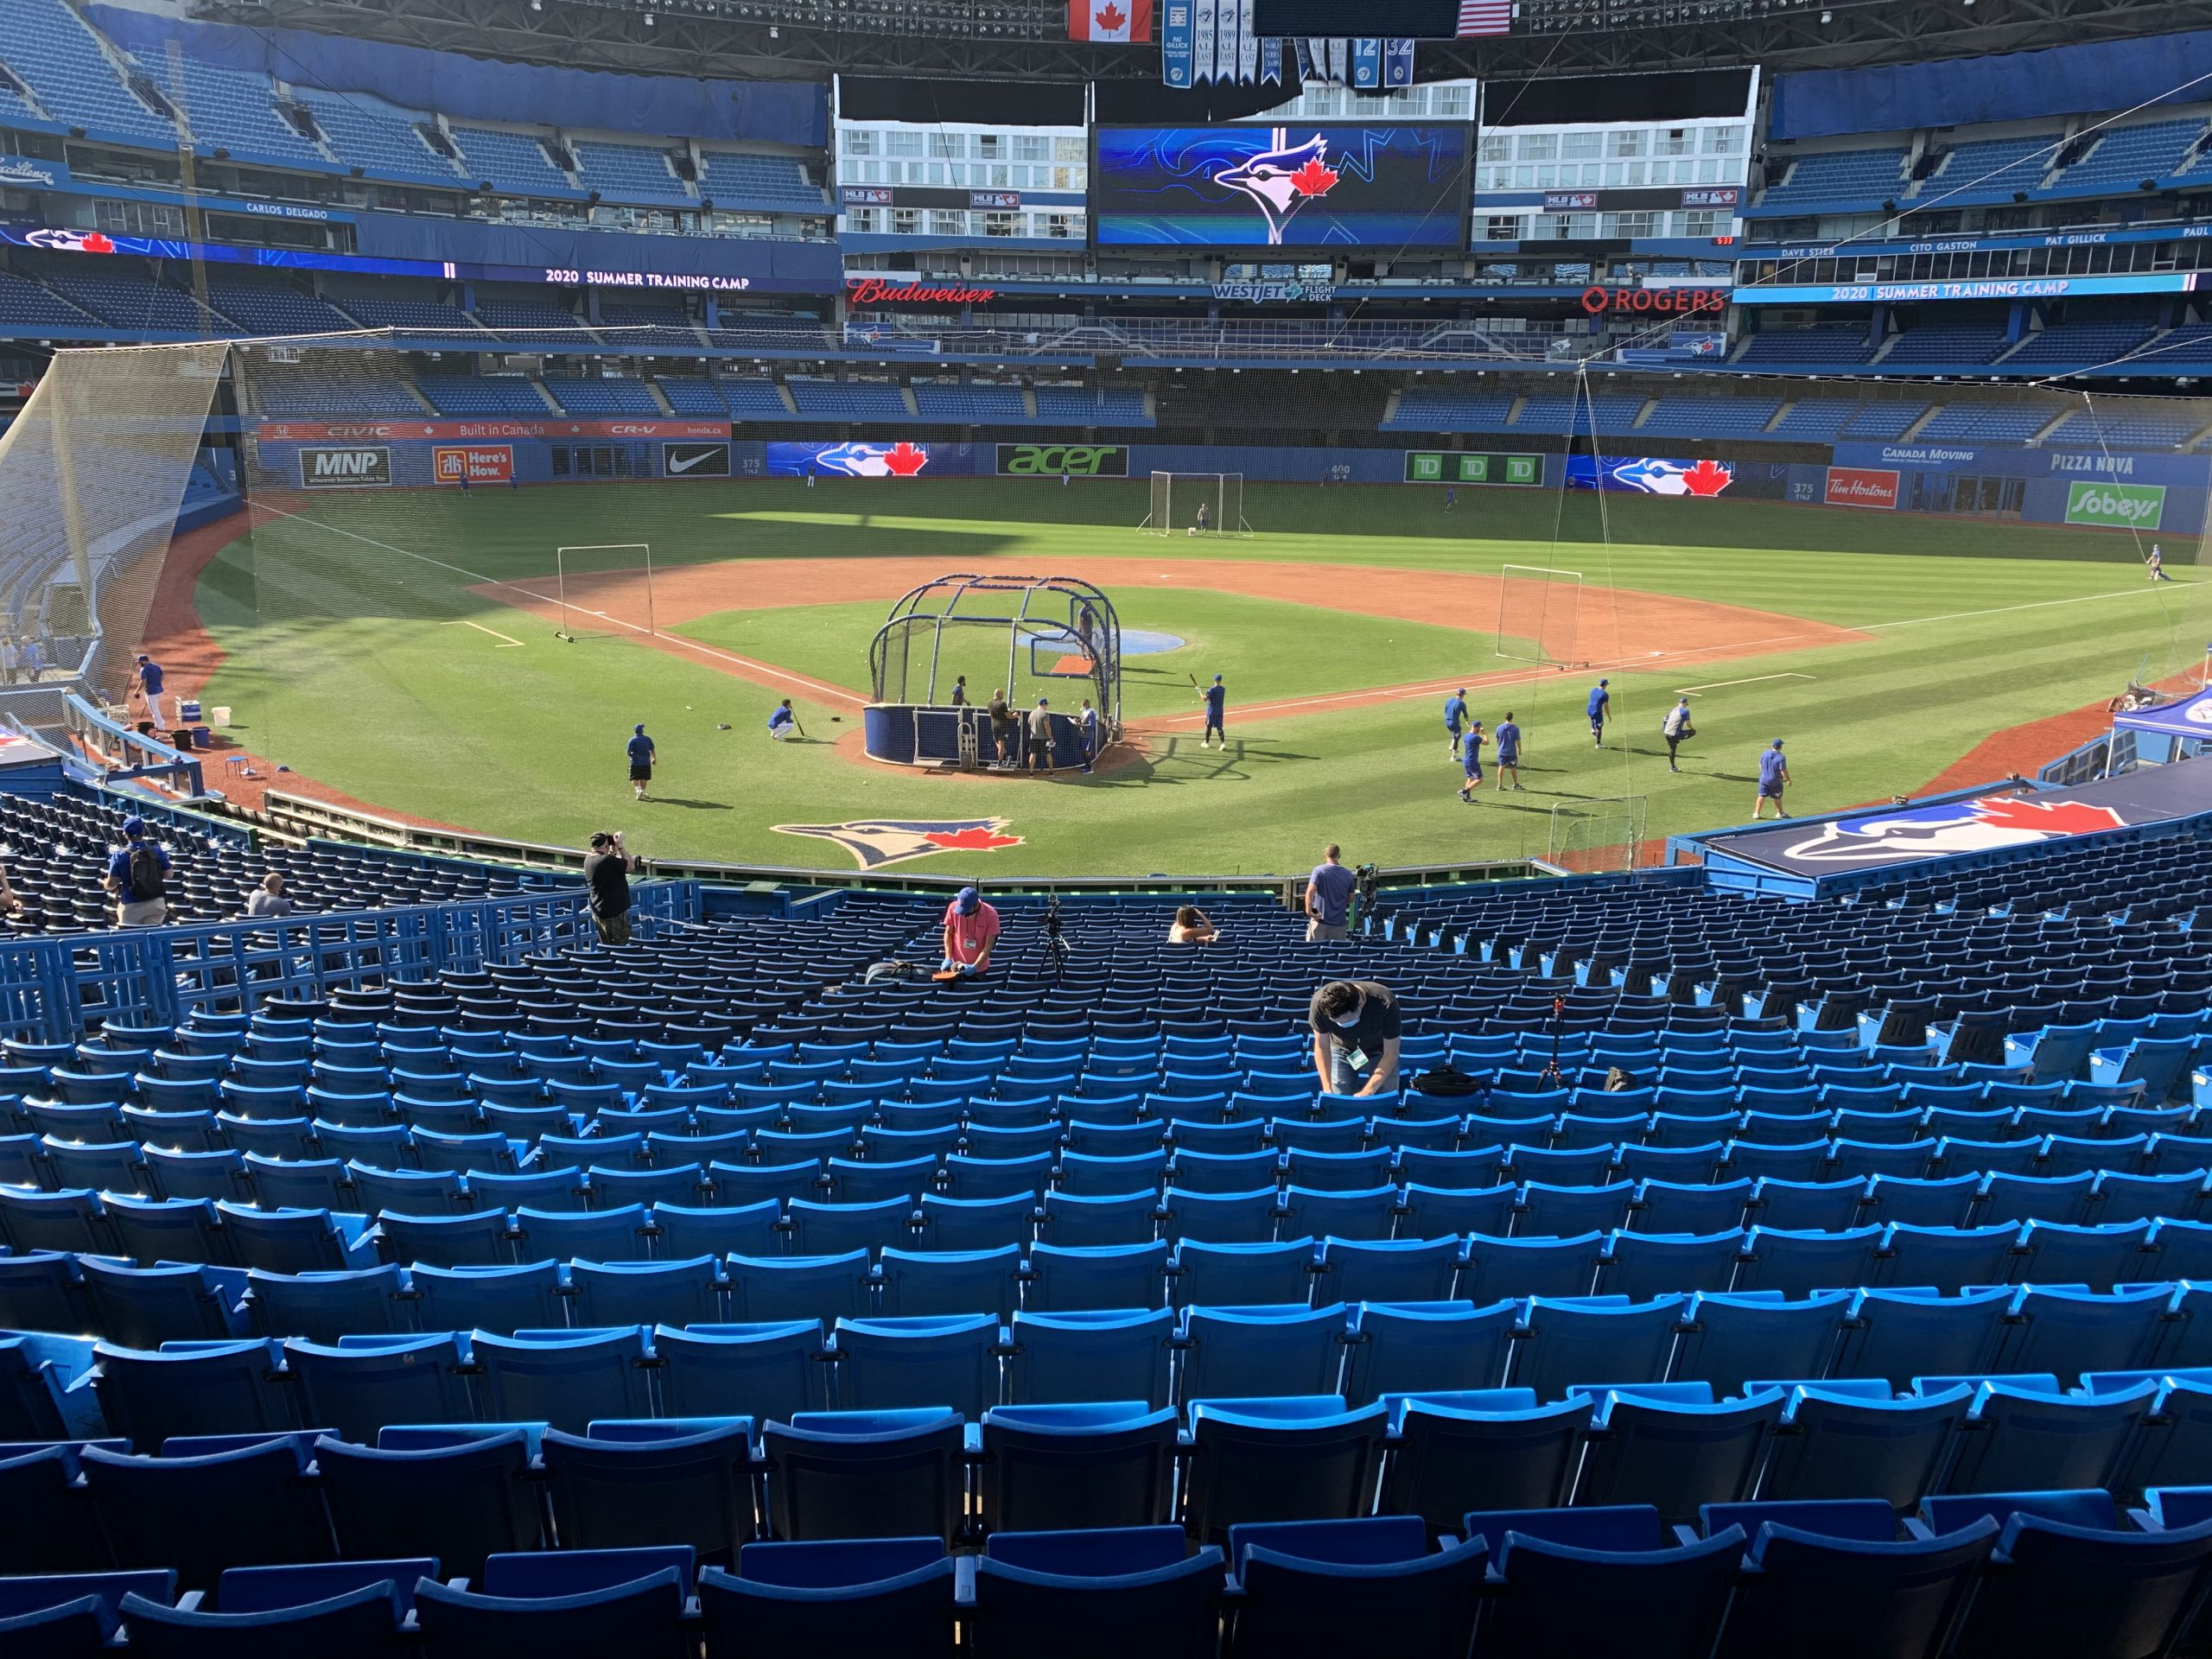 Blue Jays will not be allowed to play games in Canada